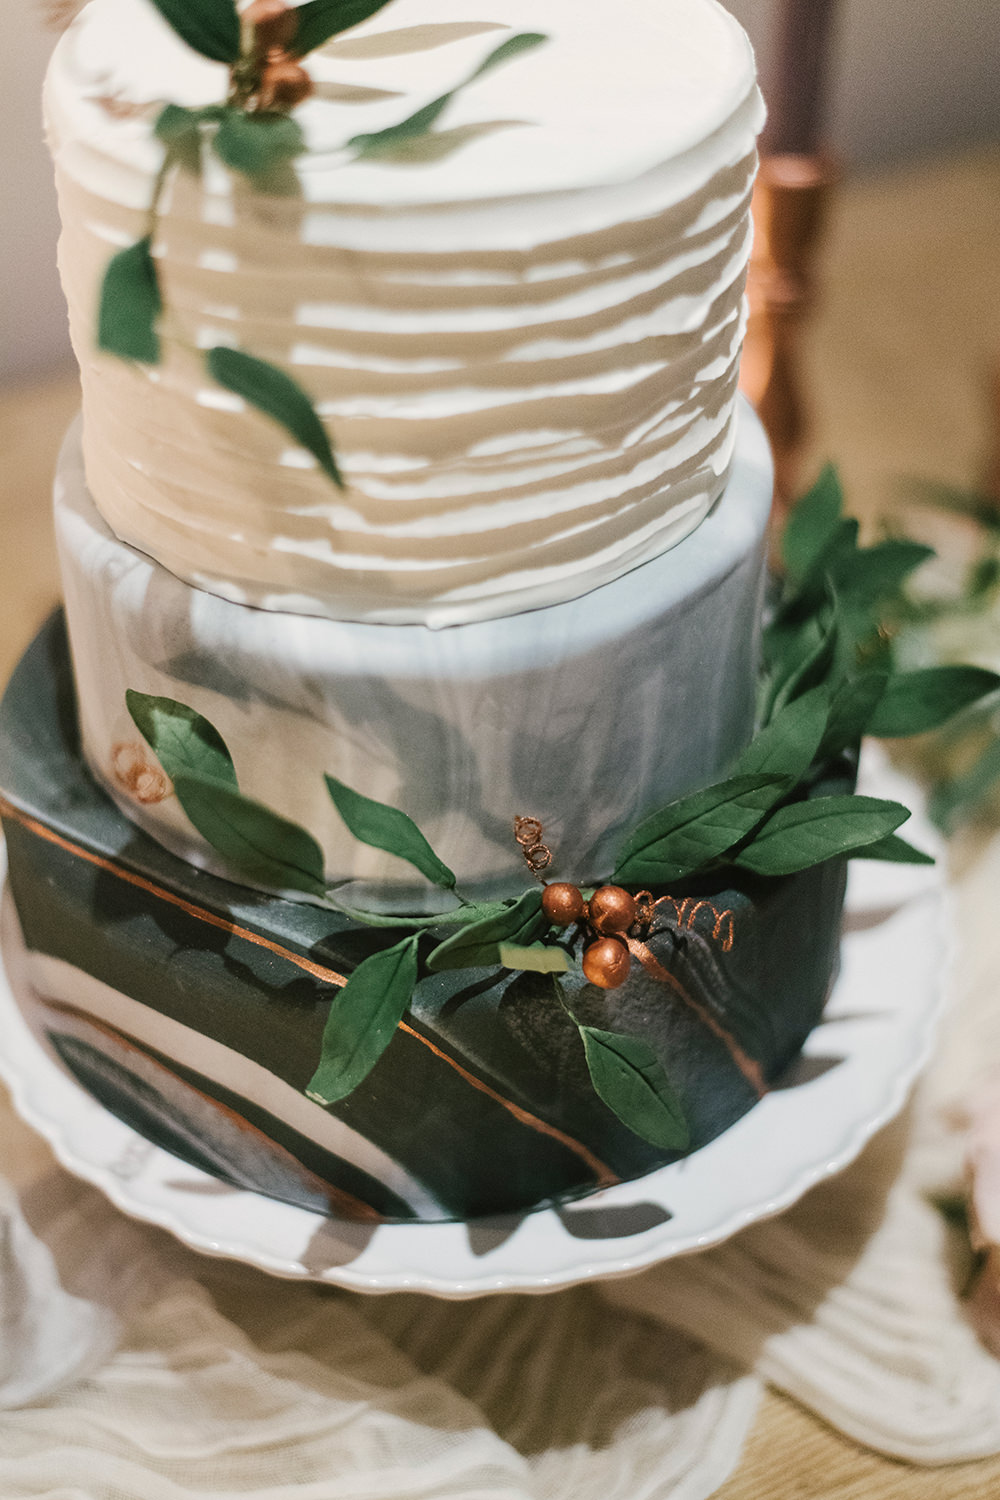 patterned wedding cakes - photo by Alicia King Photography http://ruffledblog.com/upstate-new-york-wedding-ideas-with-copper